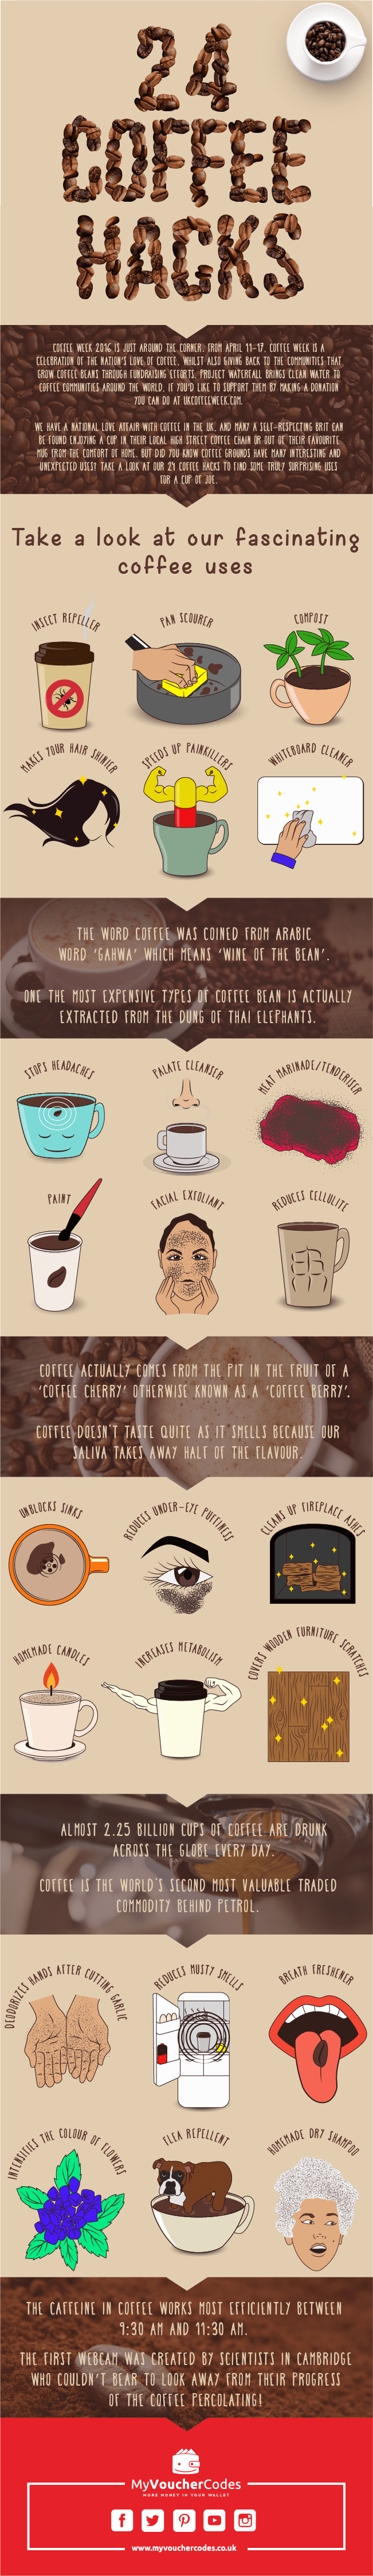 Coffee Hacks infographic V6-01